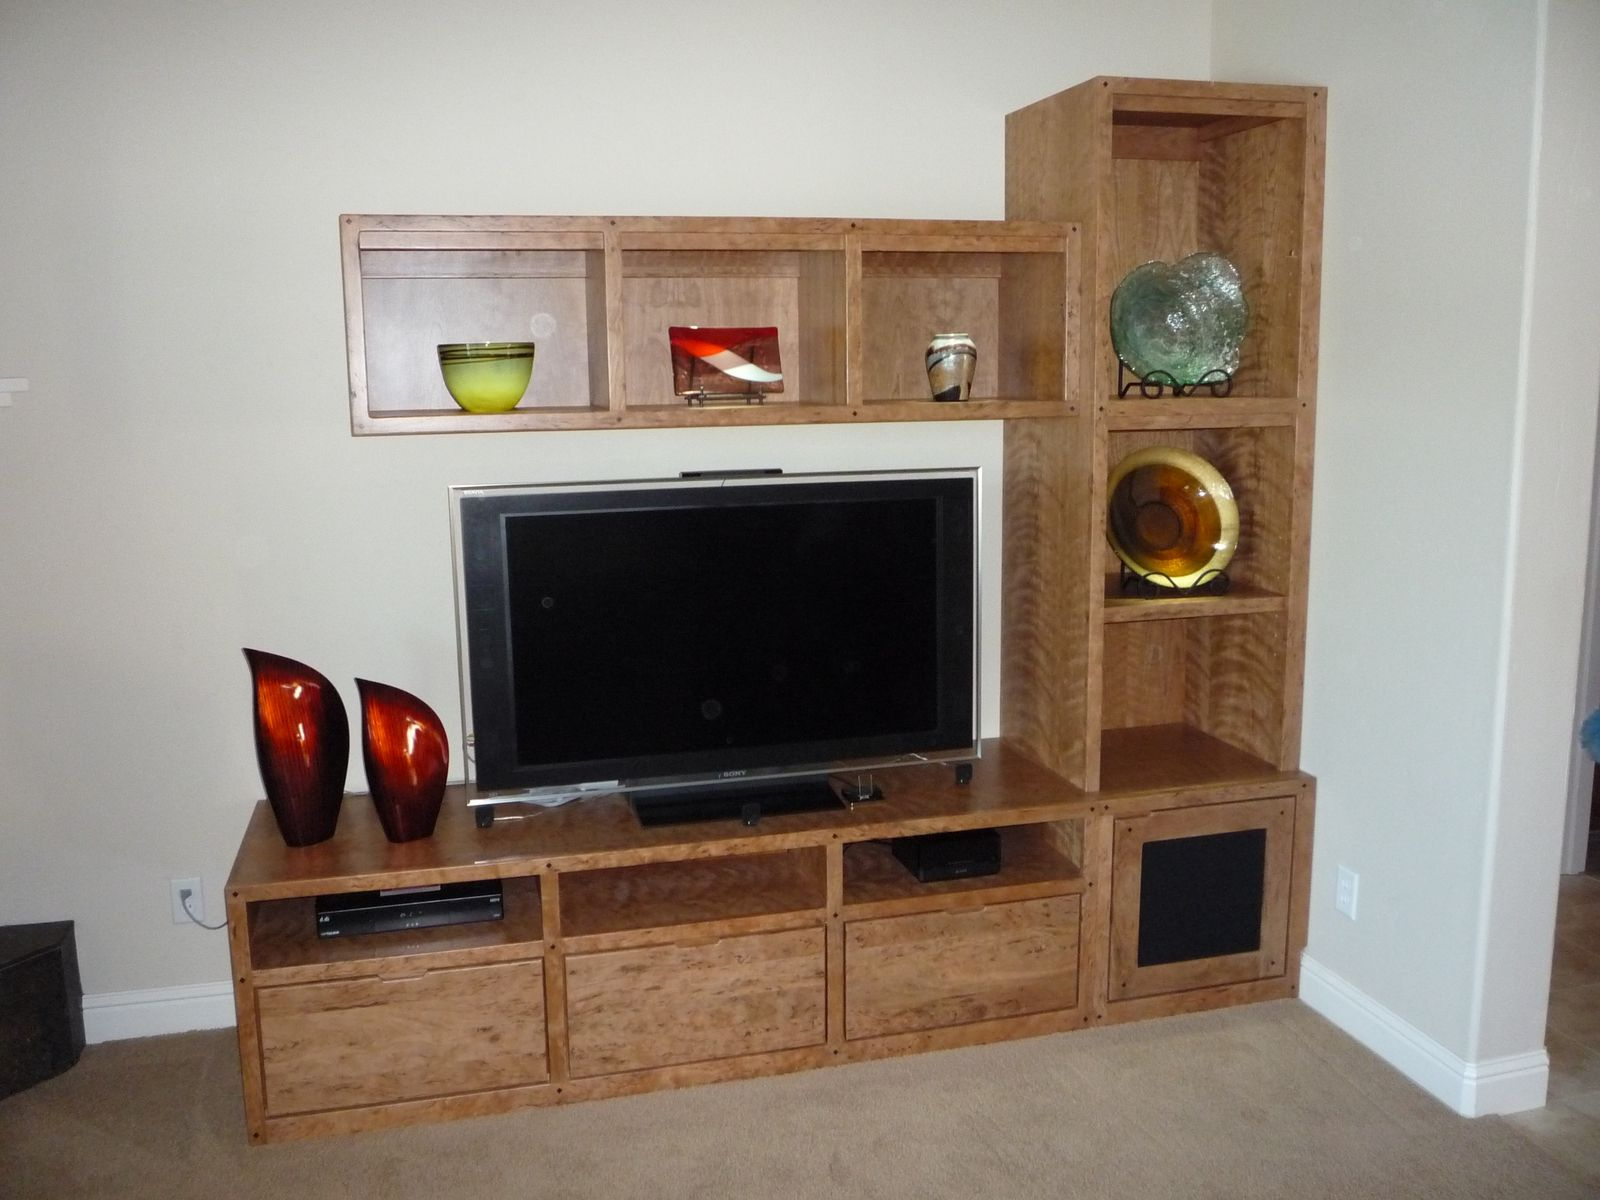 Entertainment Center Design Ideas wall unit design ideas storage ikea white wall unit entertainment center Images About Entertainment Center Ideas On Pinterest Entertainment Center Entertainment Center Decor And Tv Stands